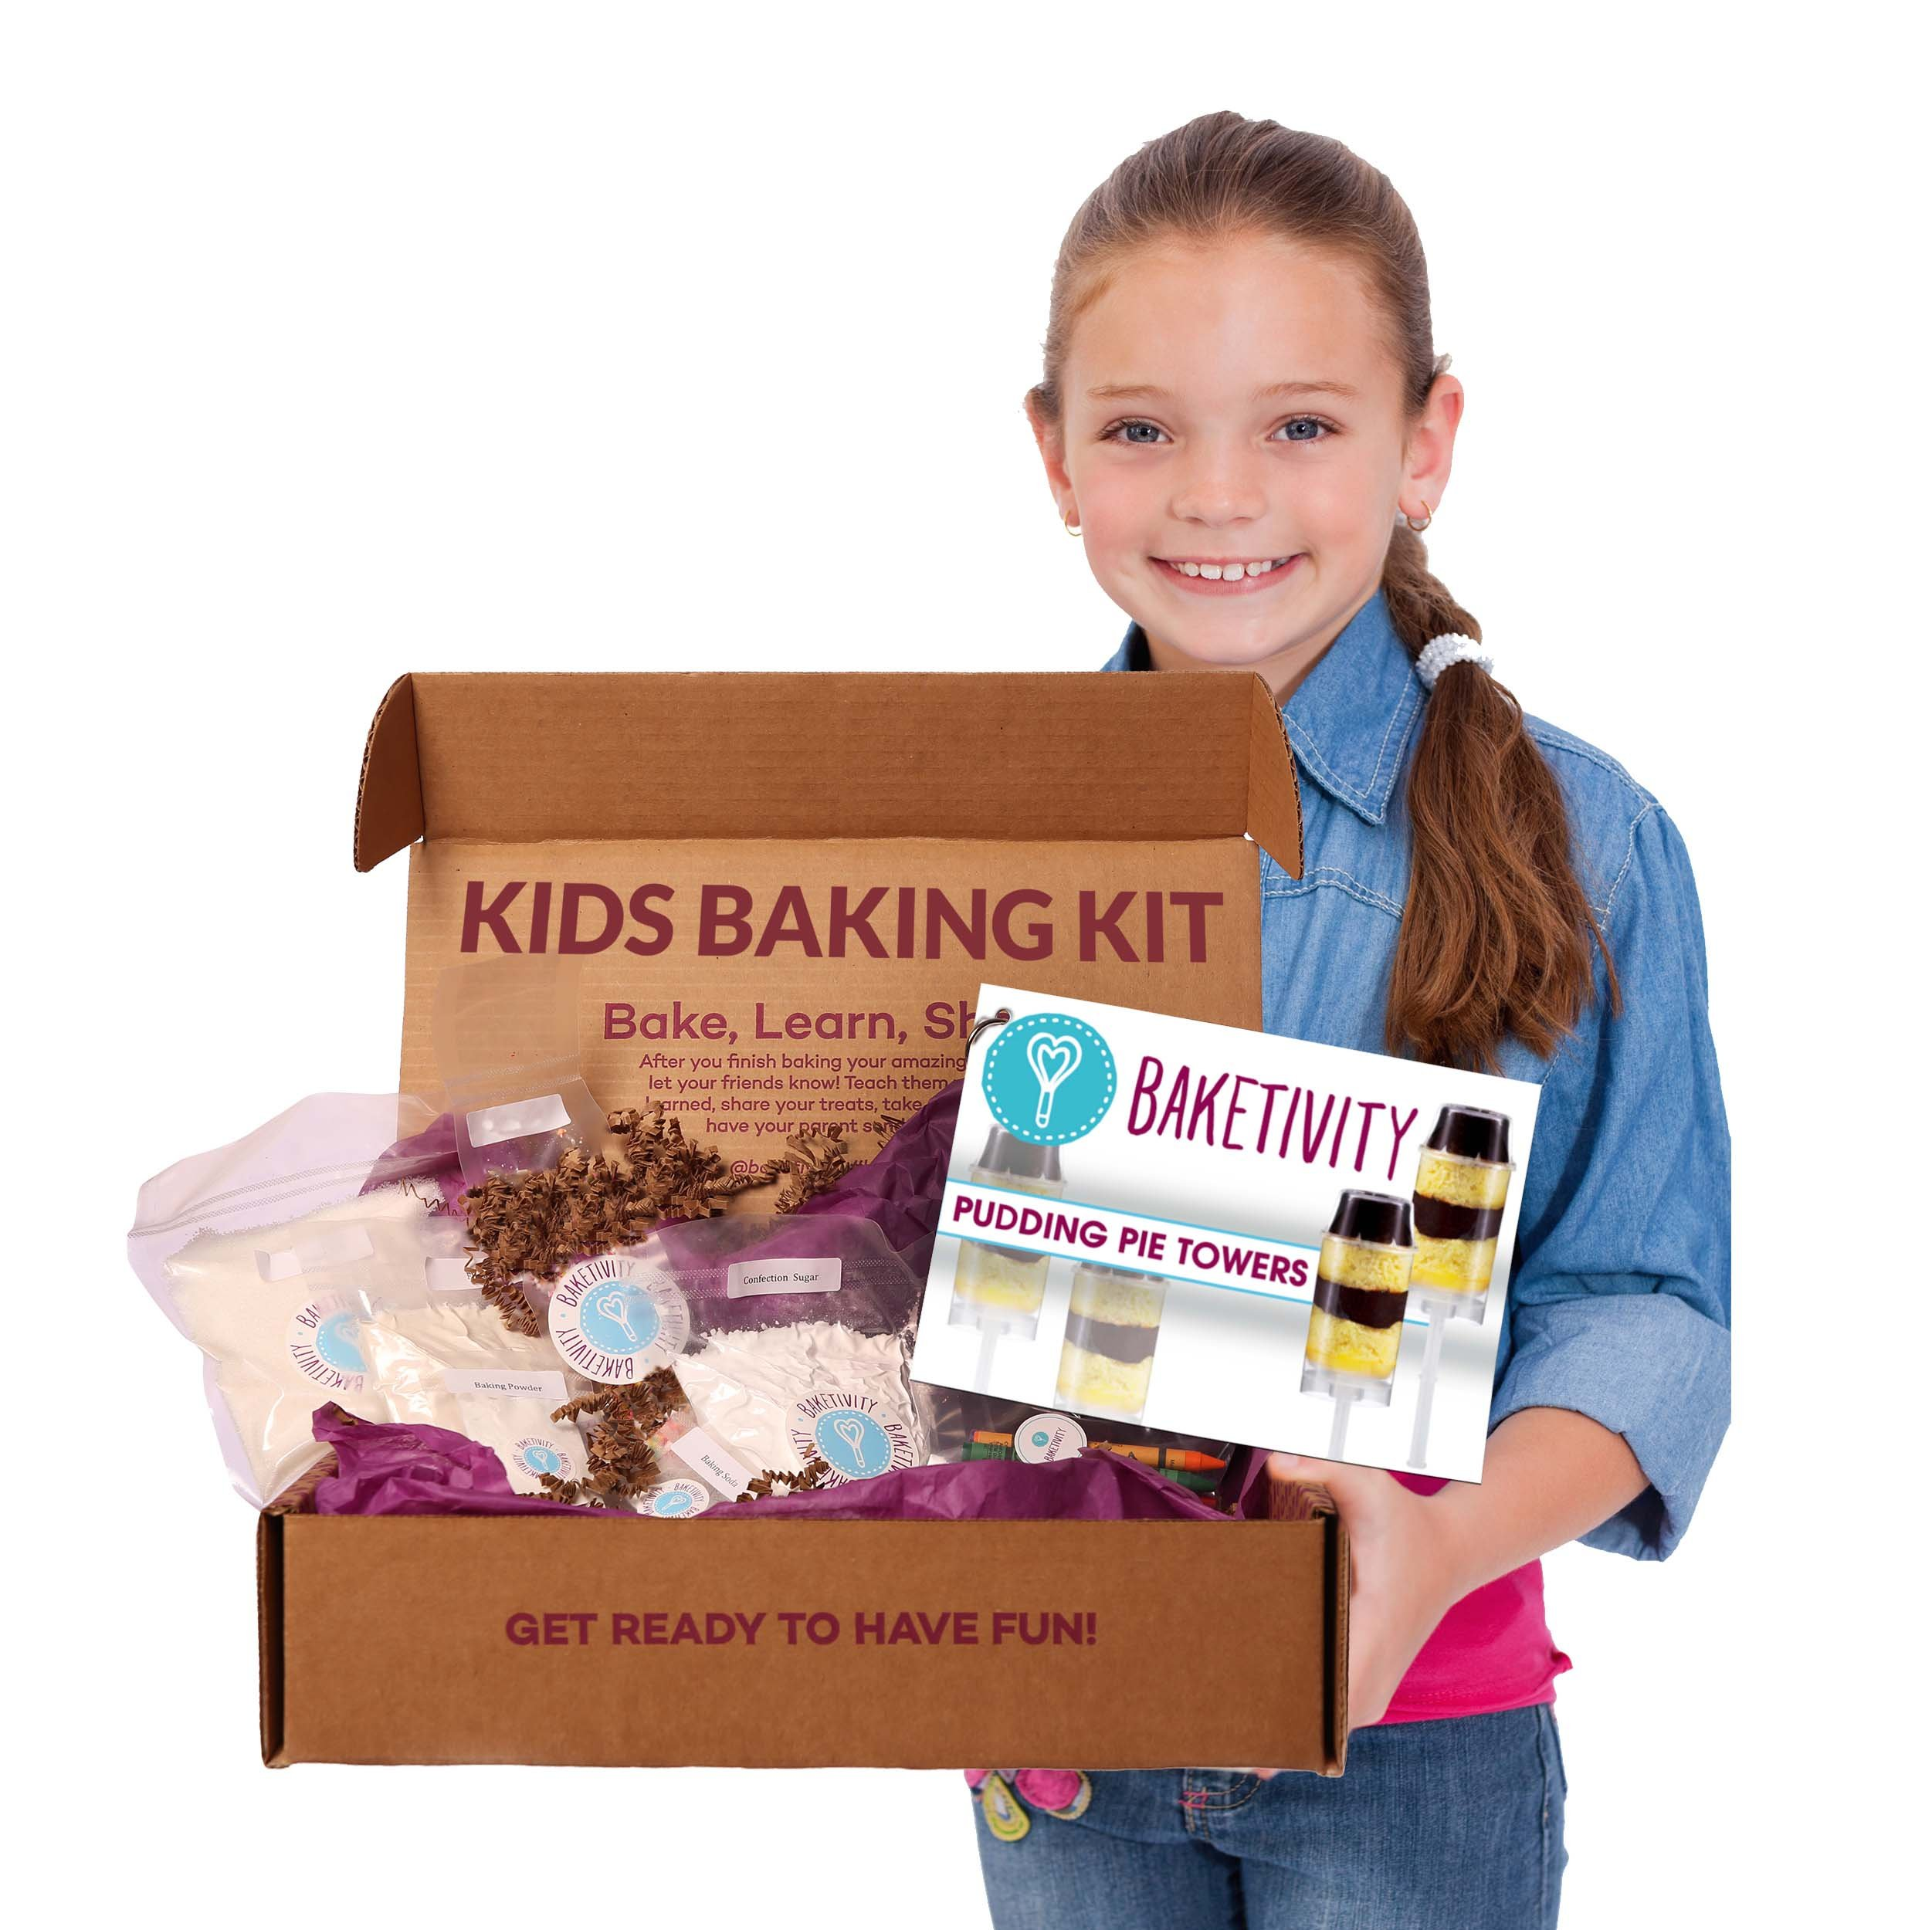 Baketivity Kids Baking Set, Meal Cooking Party Supply Kit for Teens, Real Fun Little Junior Chef Essential Kitchen Lessons, Includes Pre-Measured Ingredients, Pudding Pie Towers